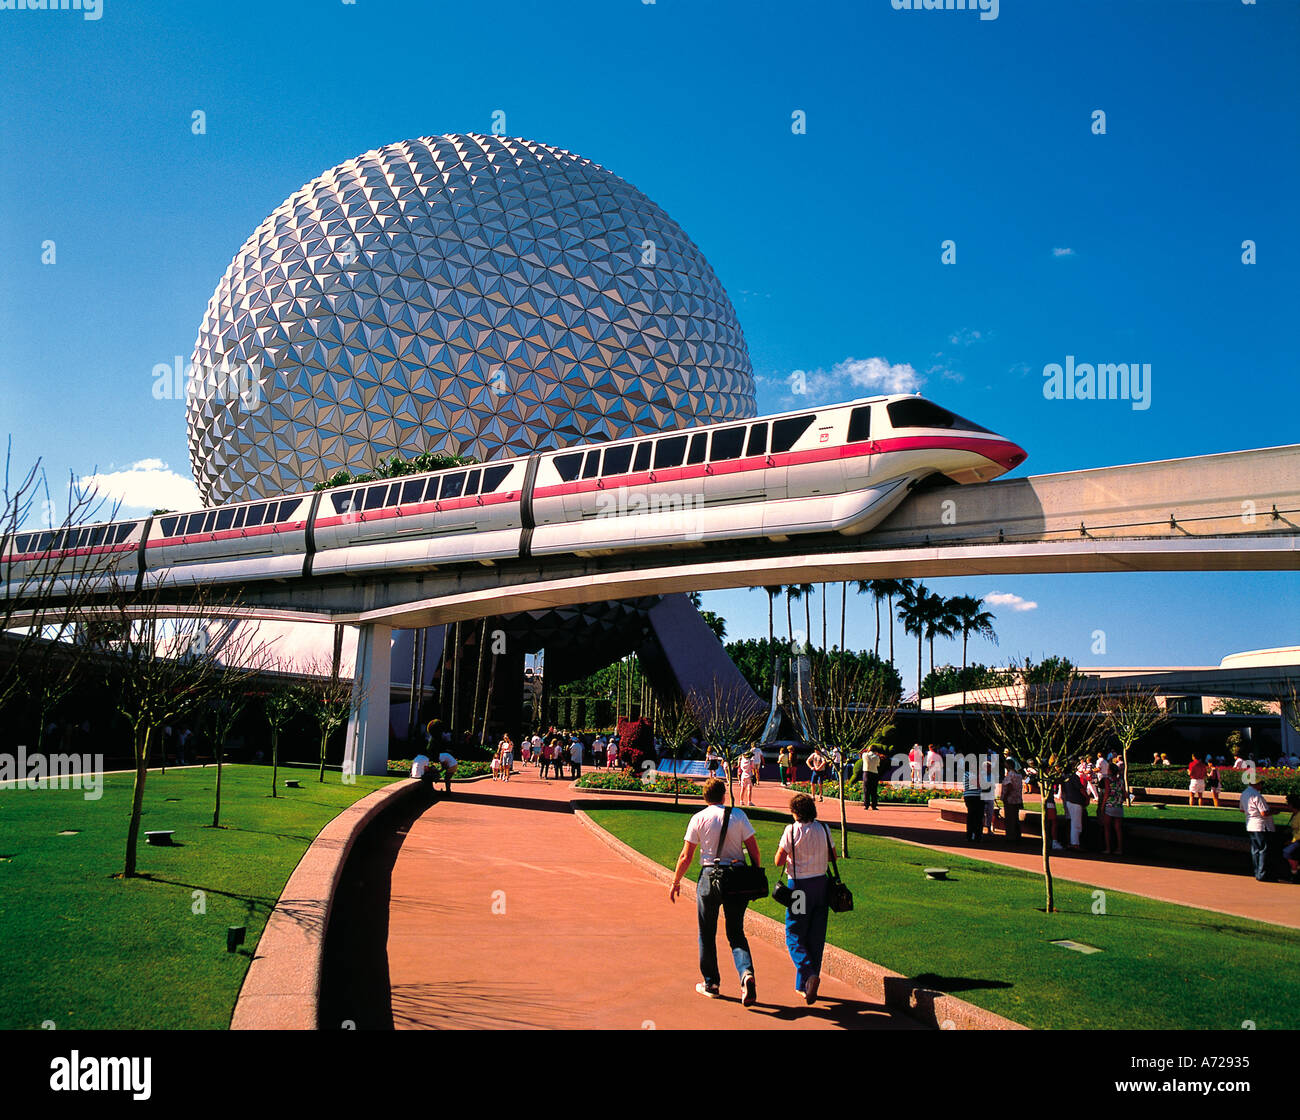 epcot orlando monorail center train spaceship earth disneyworld alamy ball